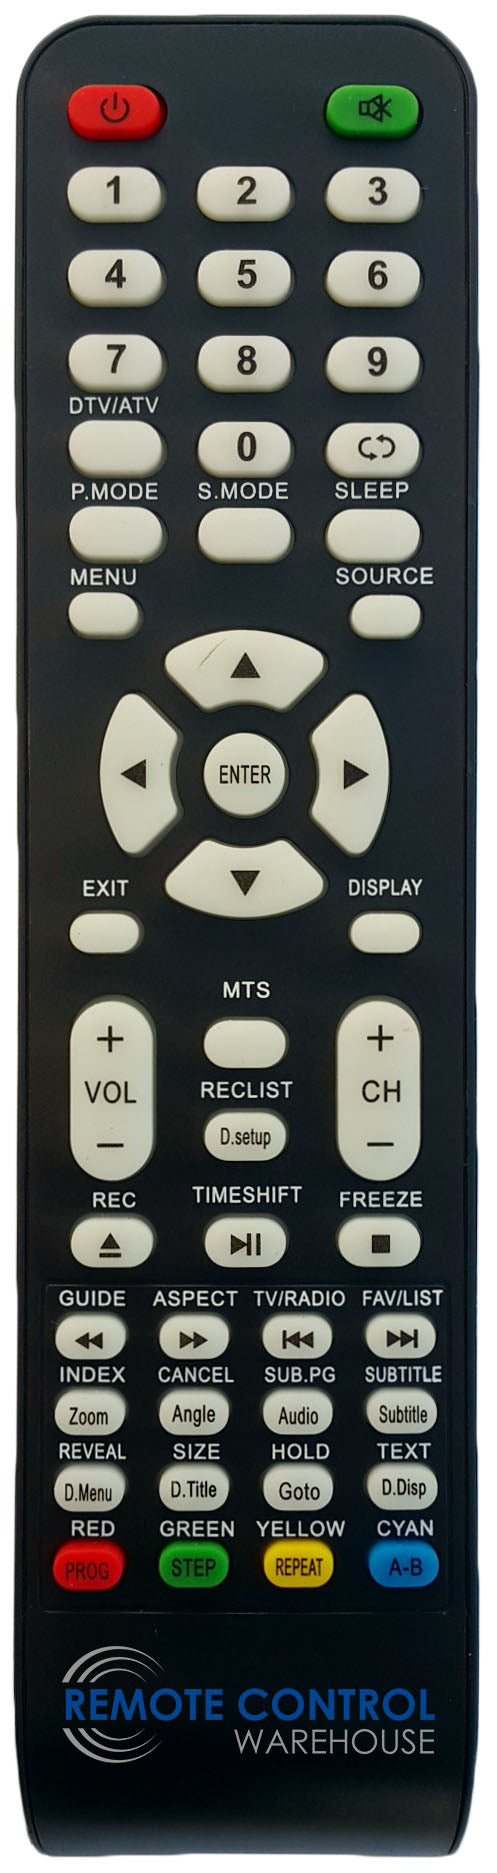 REPLACEMENT GVA REMOTE CONTROL FOR GVA  G32TDC15  LCD TV - Remote Control Warehouse